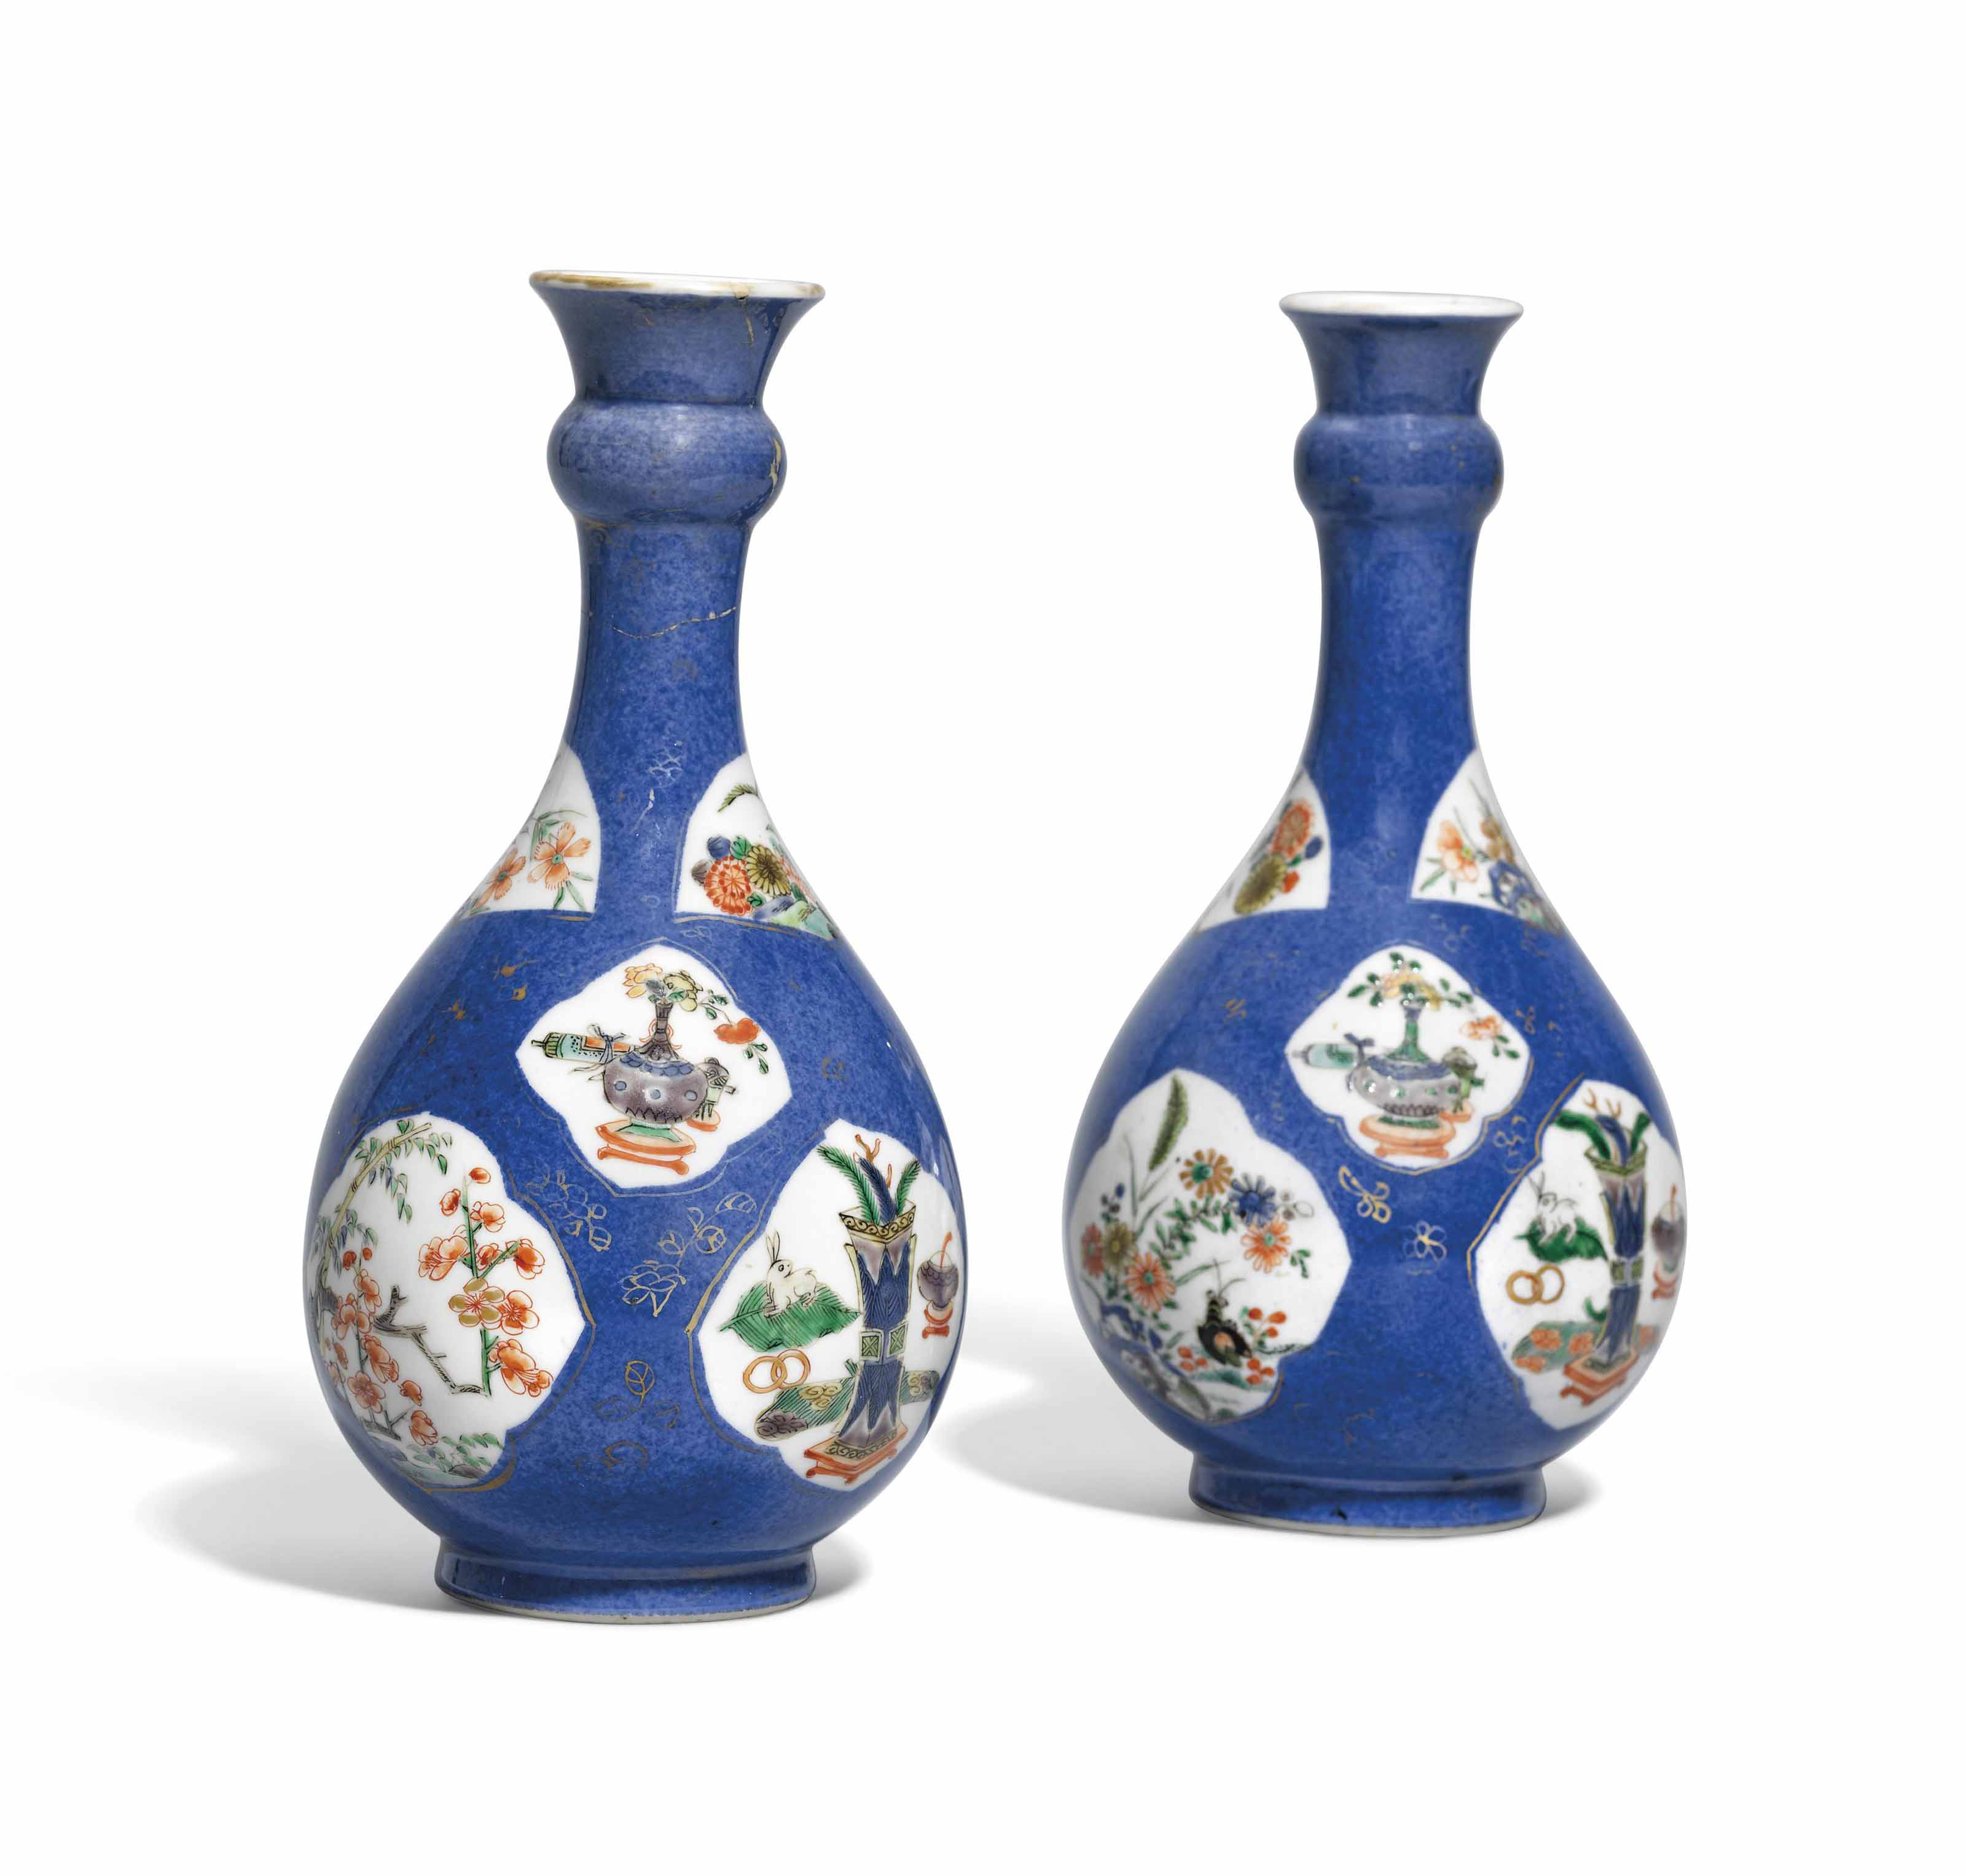 A PAIR OF CHINESE FAMILLLE VER